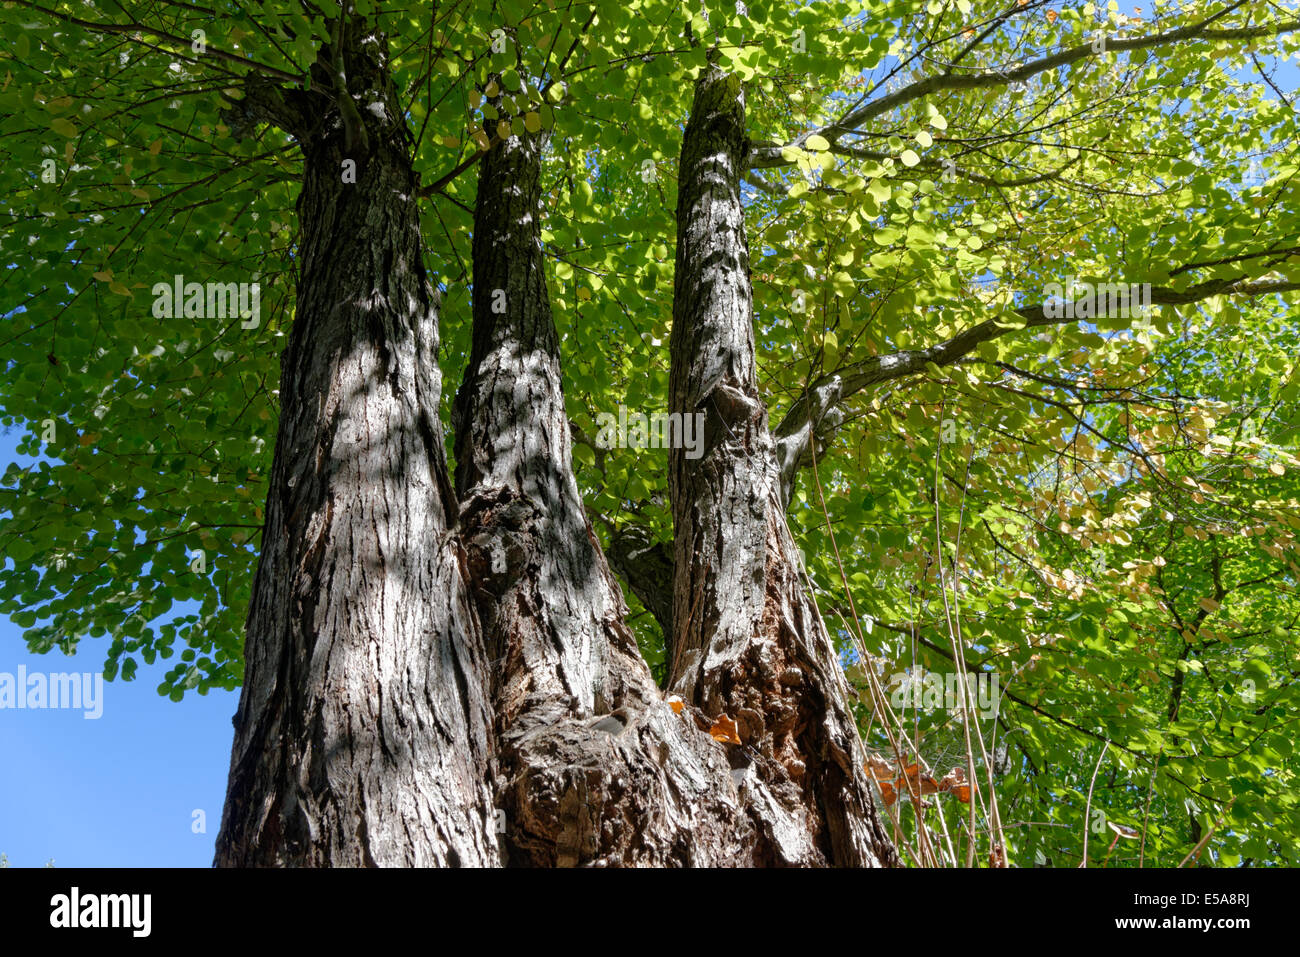 Tall, mop head trees against a blue sky in New England - Stock Image